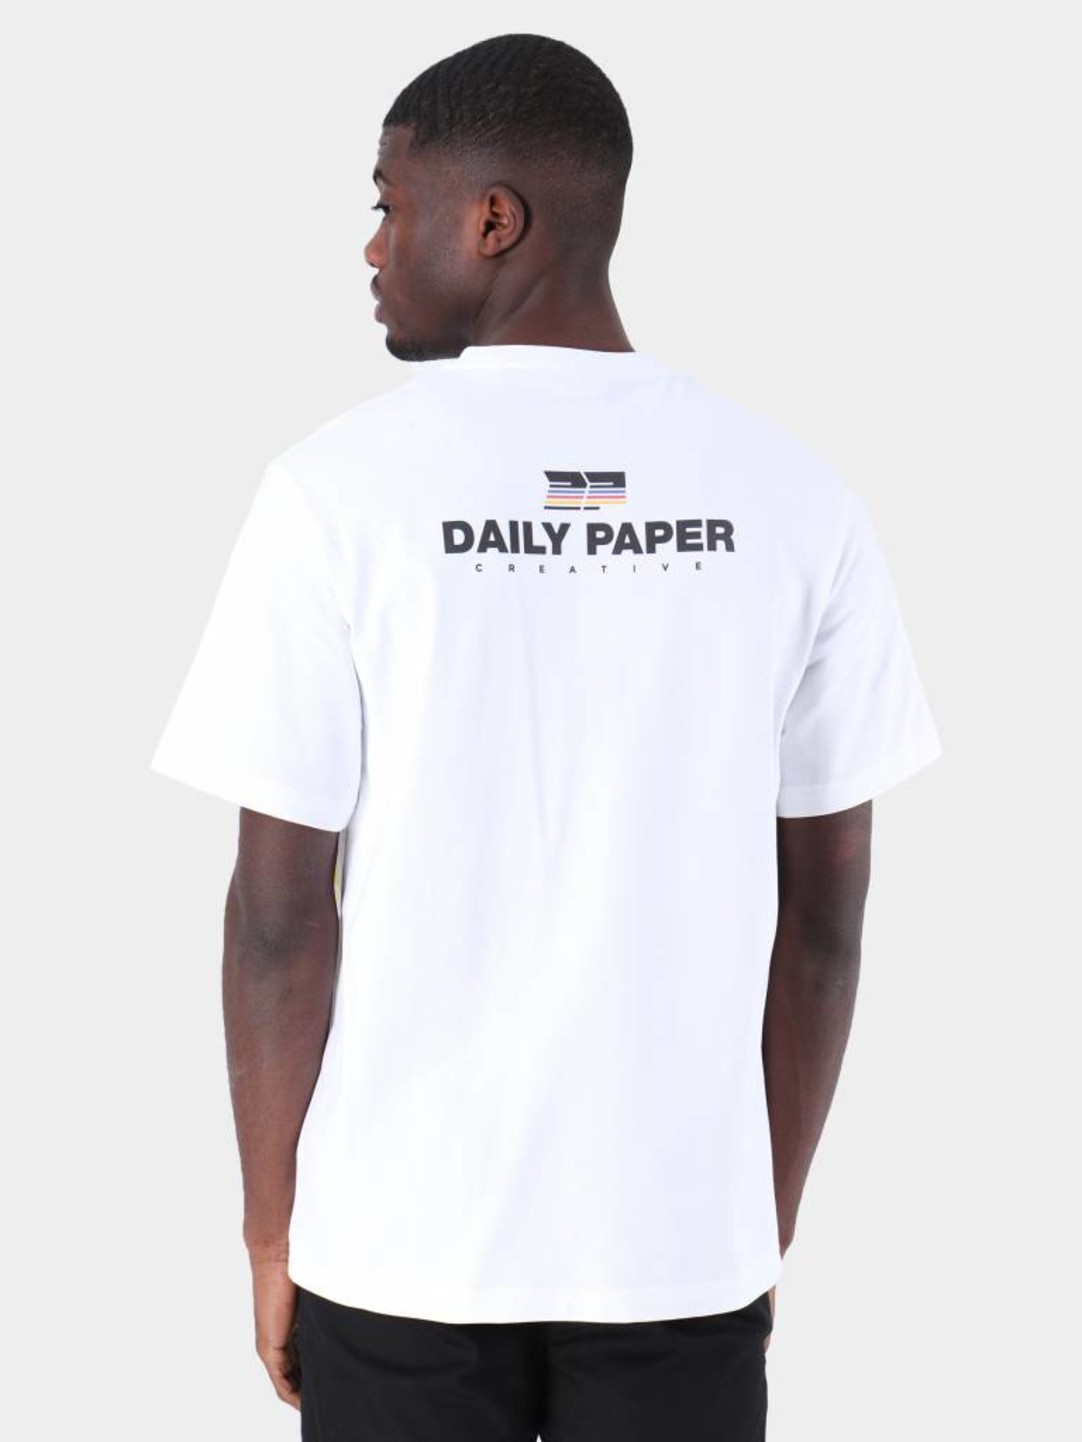 Daily Paper Daily Paper Fadwa 9 T-Shirt White 19S1TS15-09